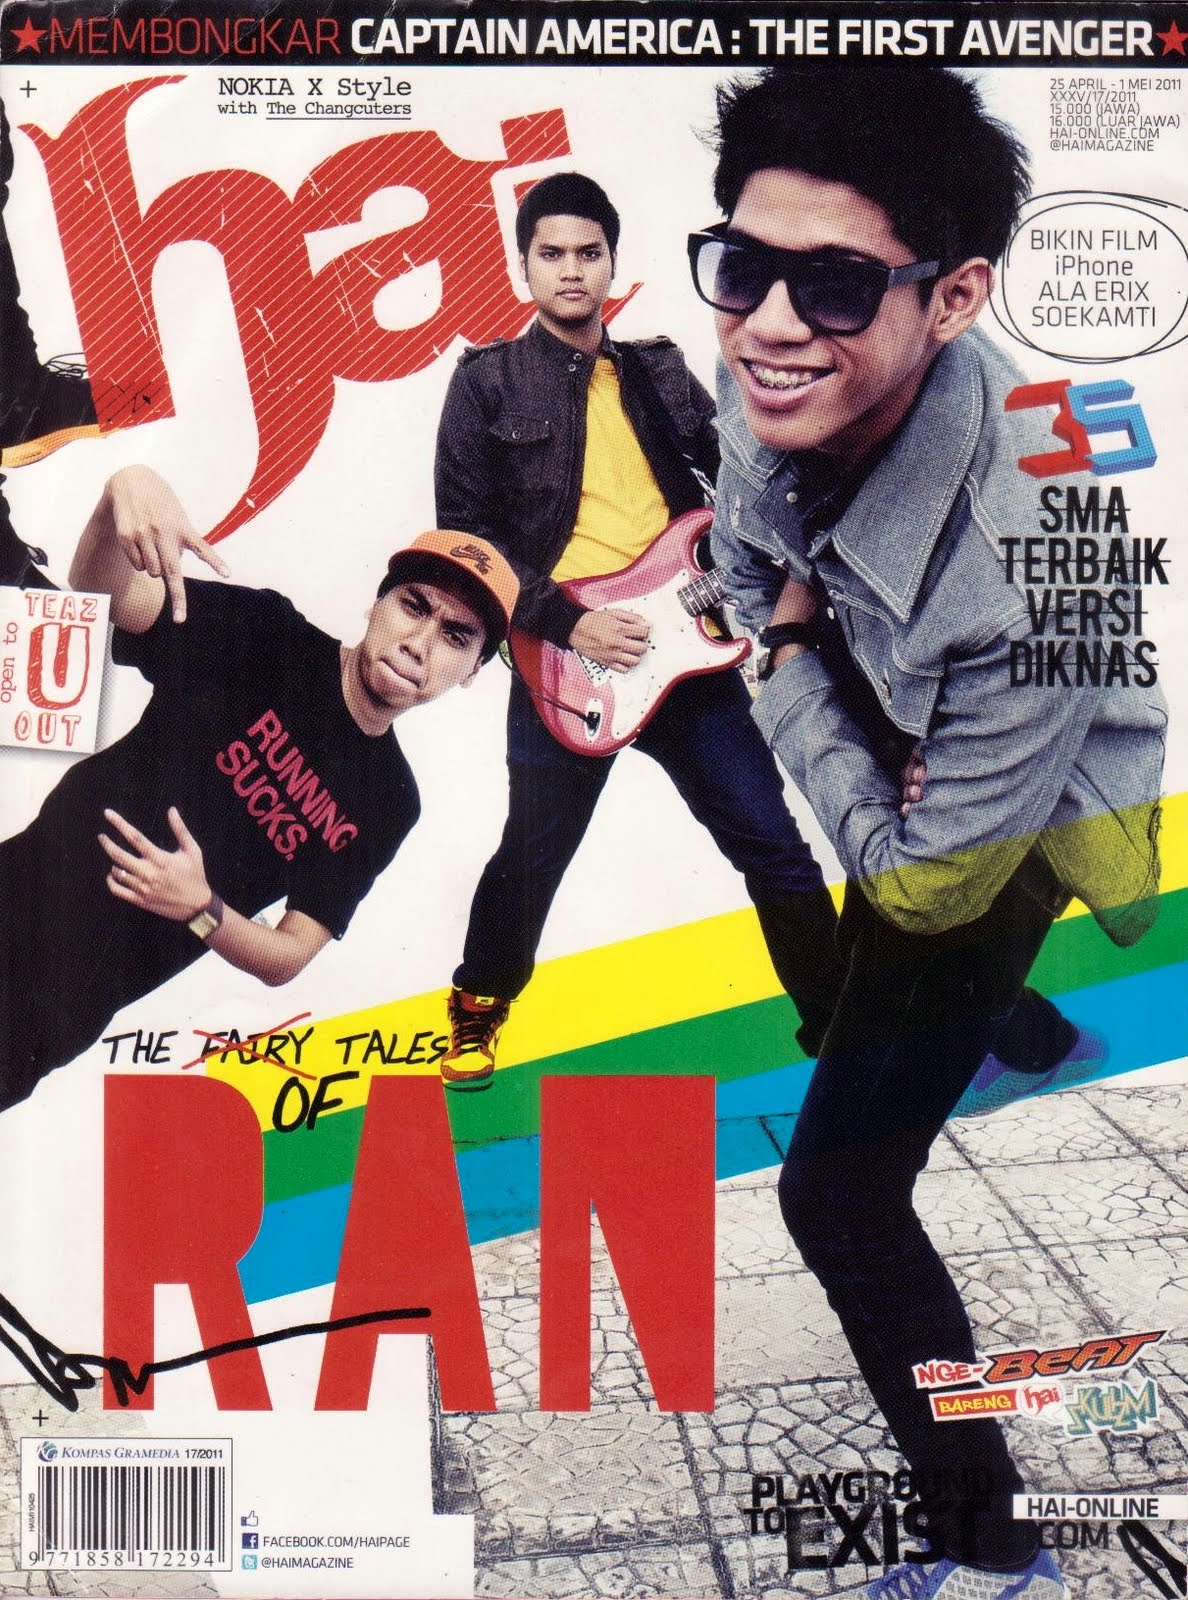 Sumber : Majalah Hai, Vol. 17, 25 April - 1 Mei 2011